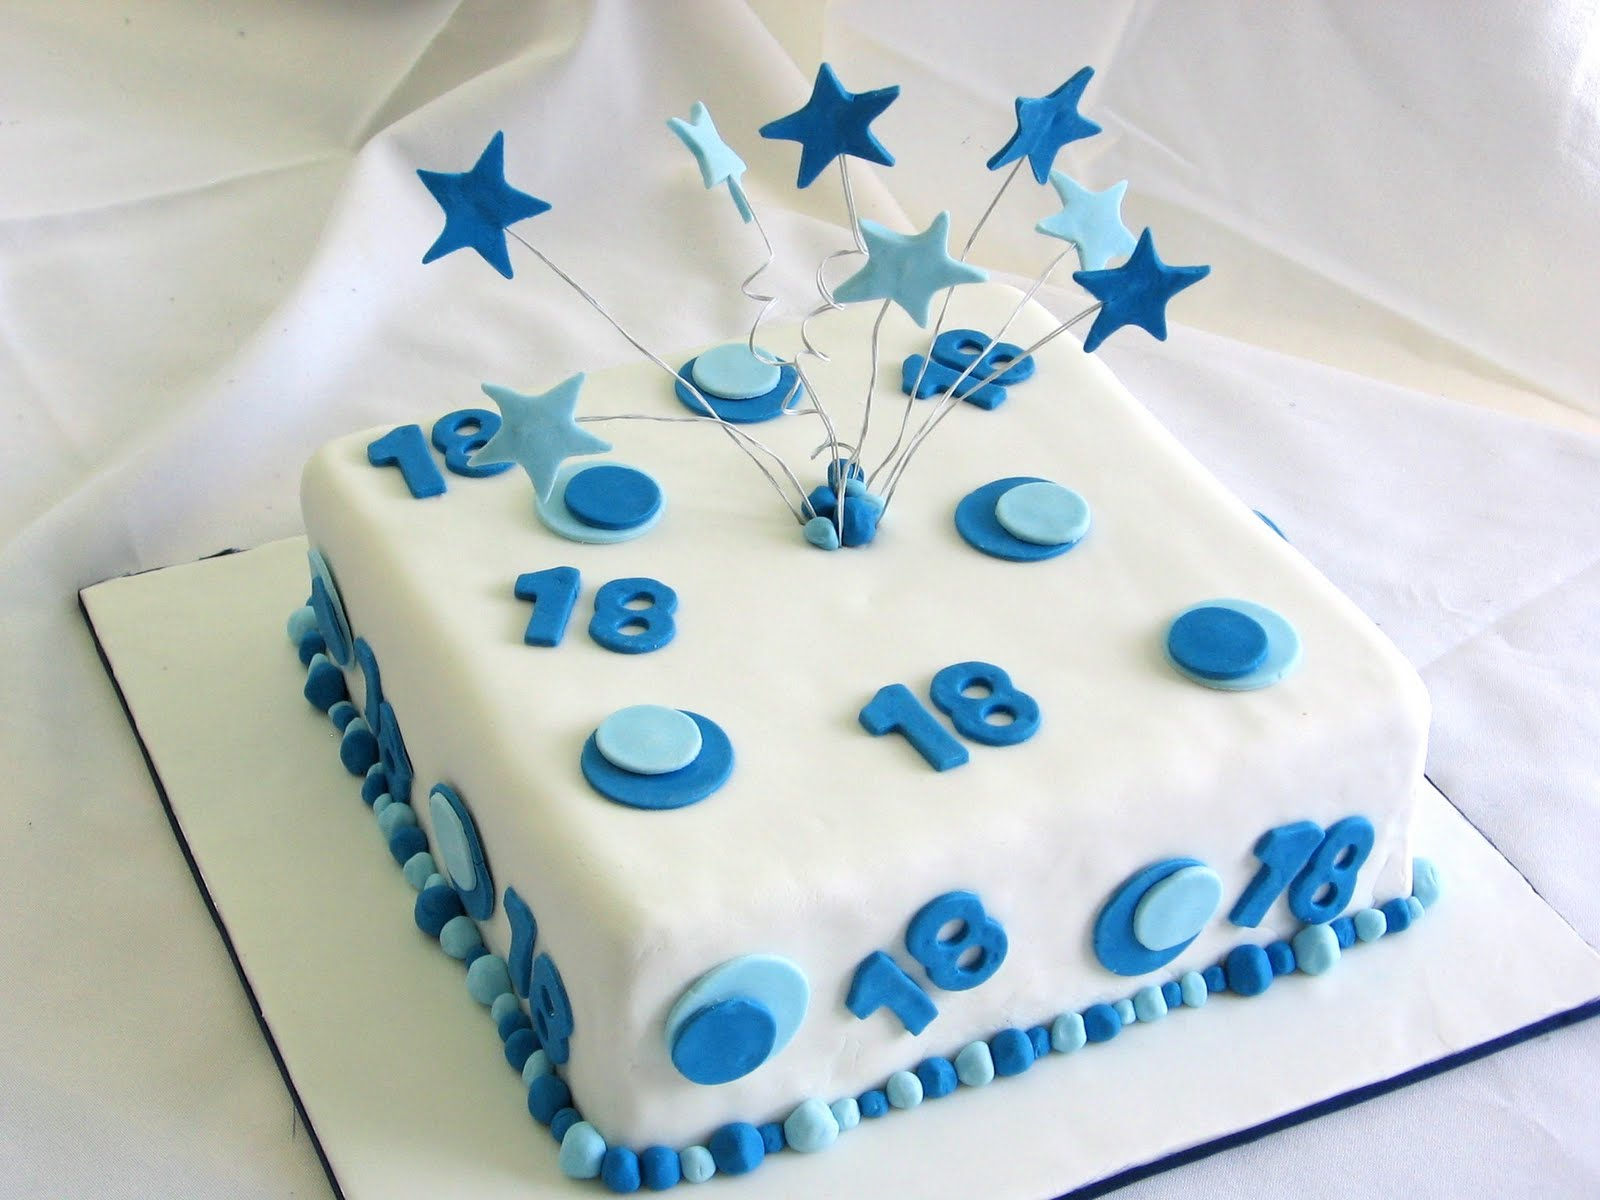 18th Birthday Cakes For Boys http://rachelwarnercakes.blogspot.com/2011/06/18th-cake.html